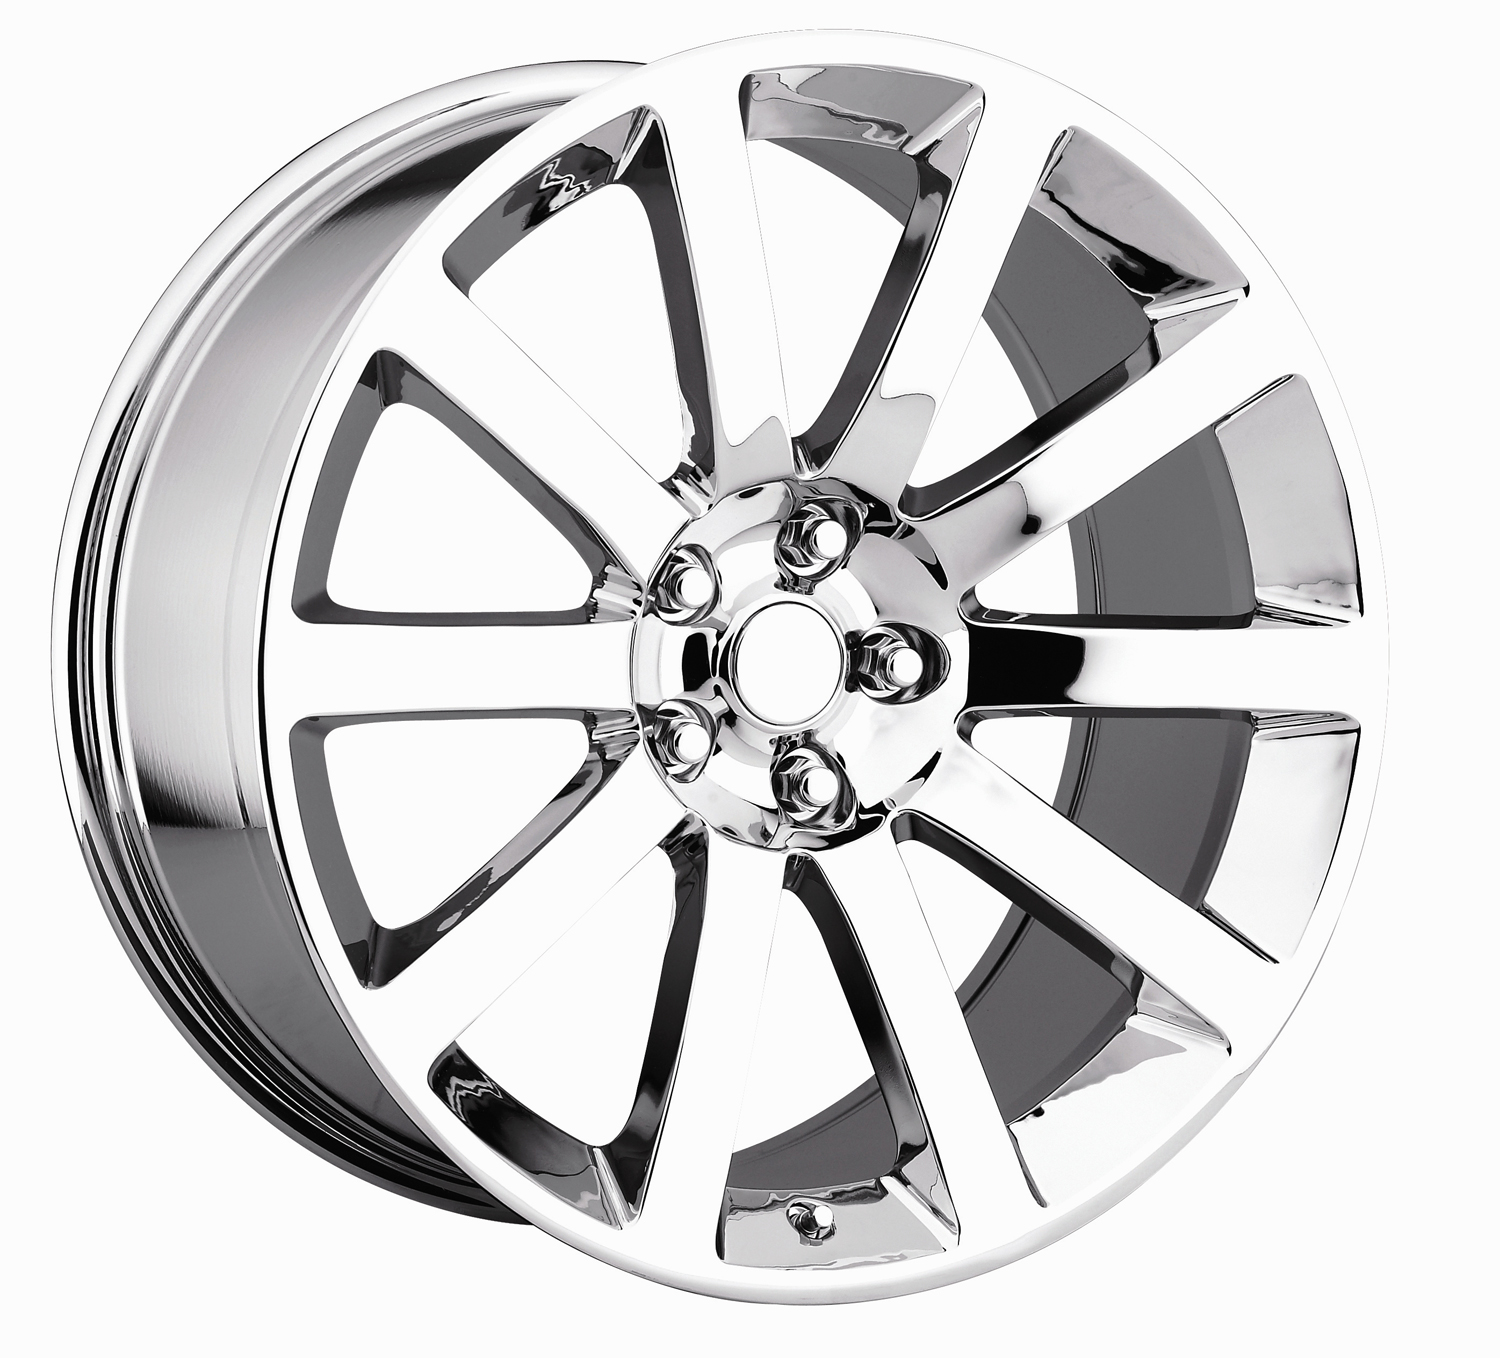 Chrysler 300C 2005-2010 22x9 5x115 +18 - SRT8 Style Wheel - Chrome With Cap 